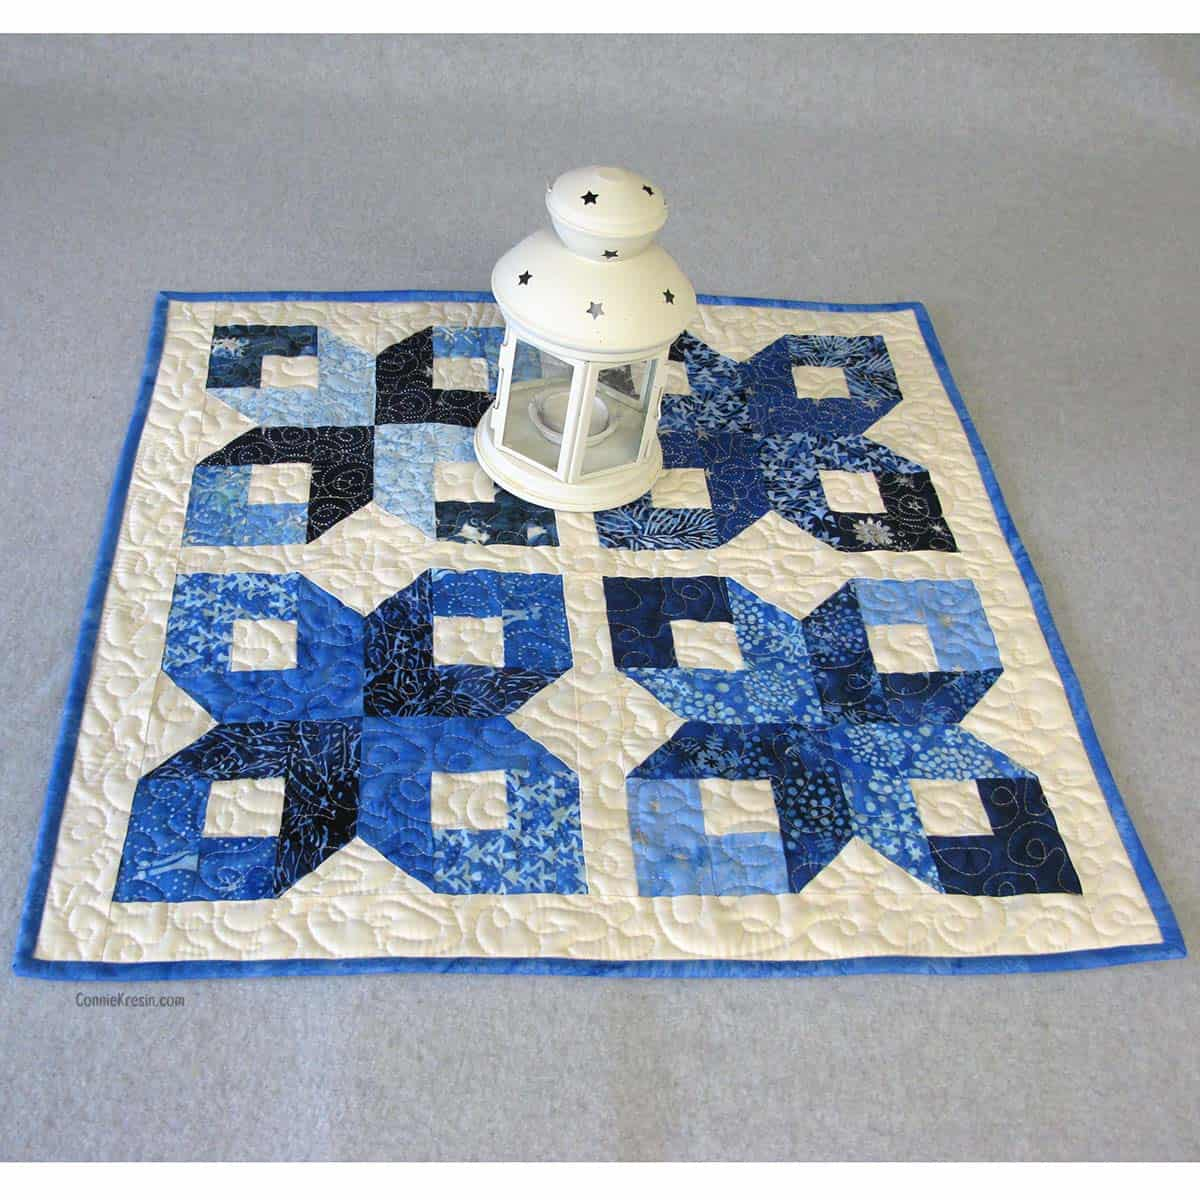 Winter Wonderland table topper tutorial with lantern